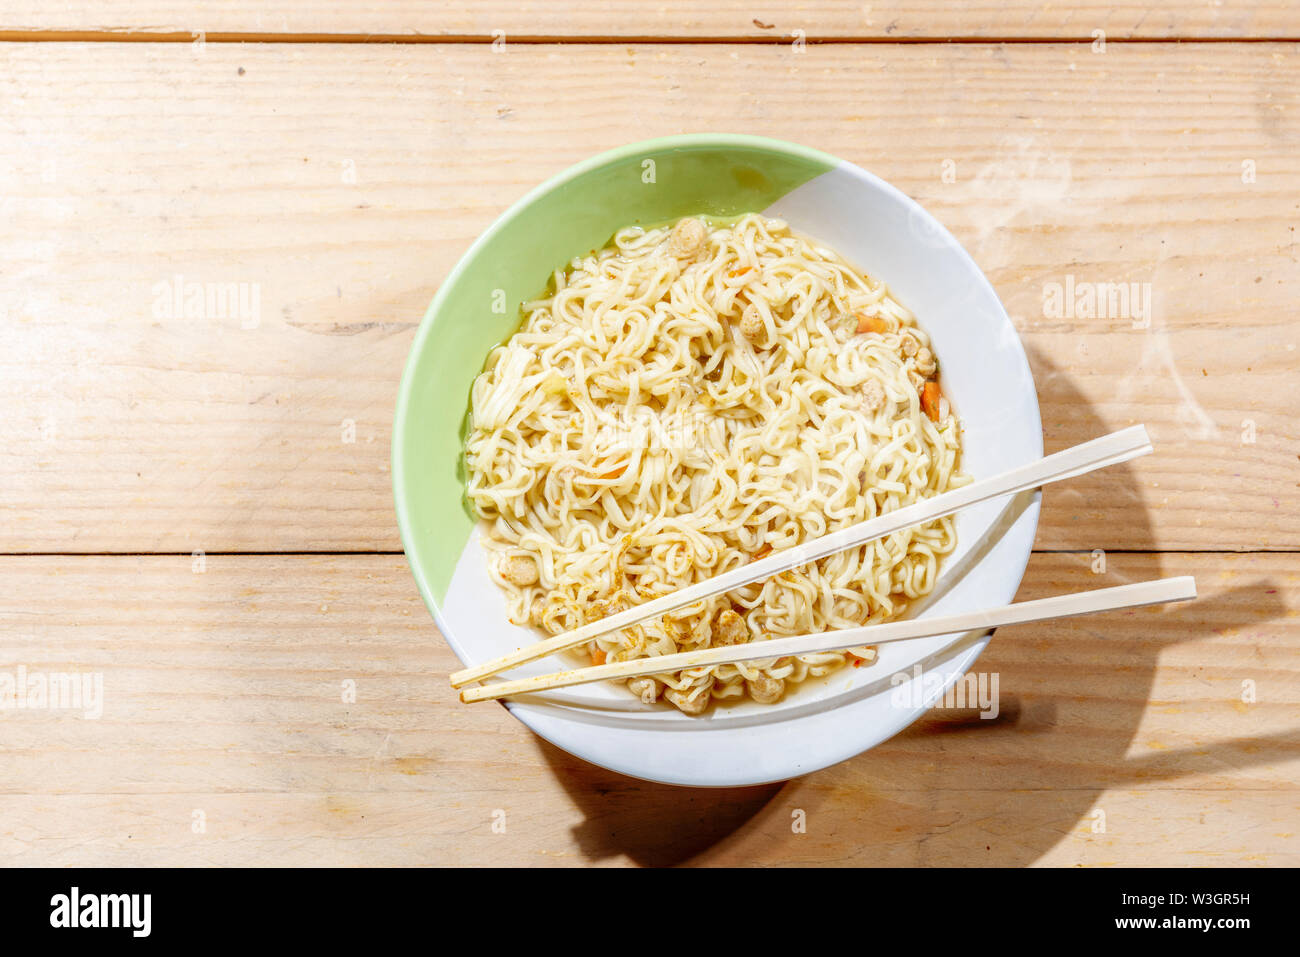 Noodles on the bowl with chopstick on wooden table background - Stock Image